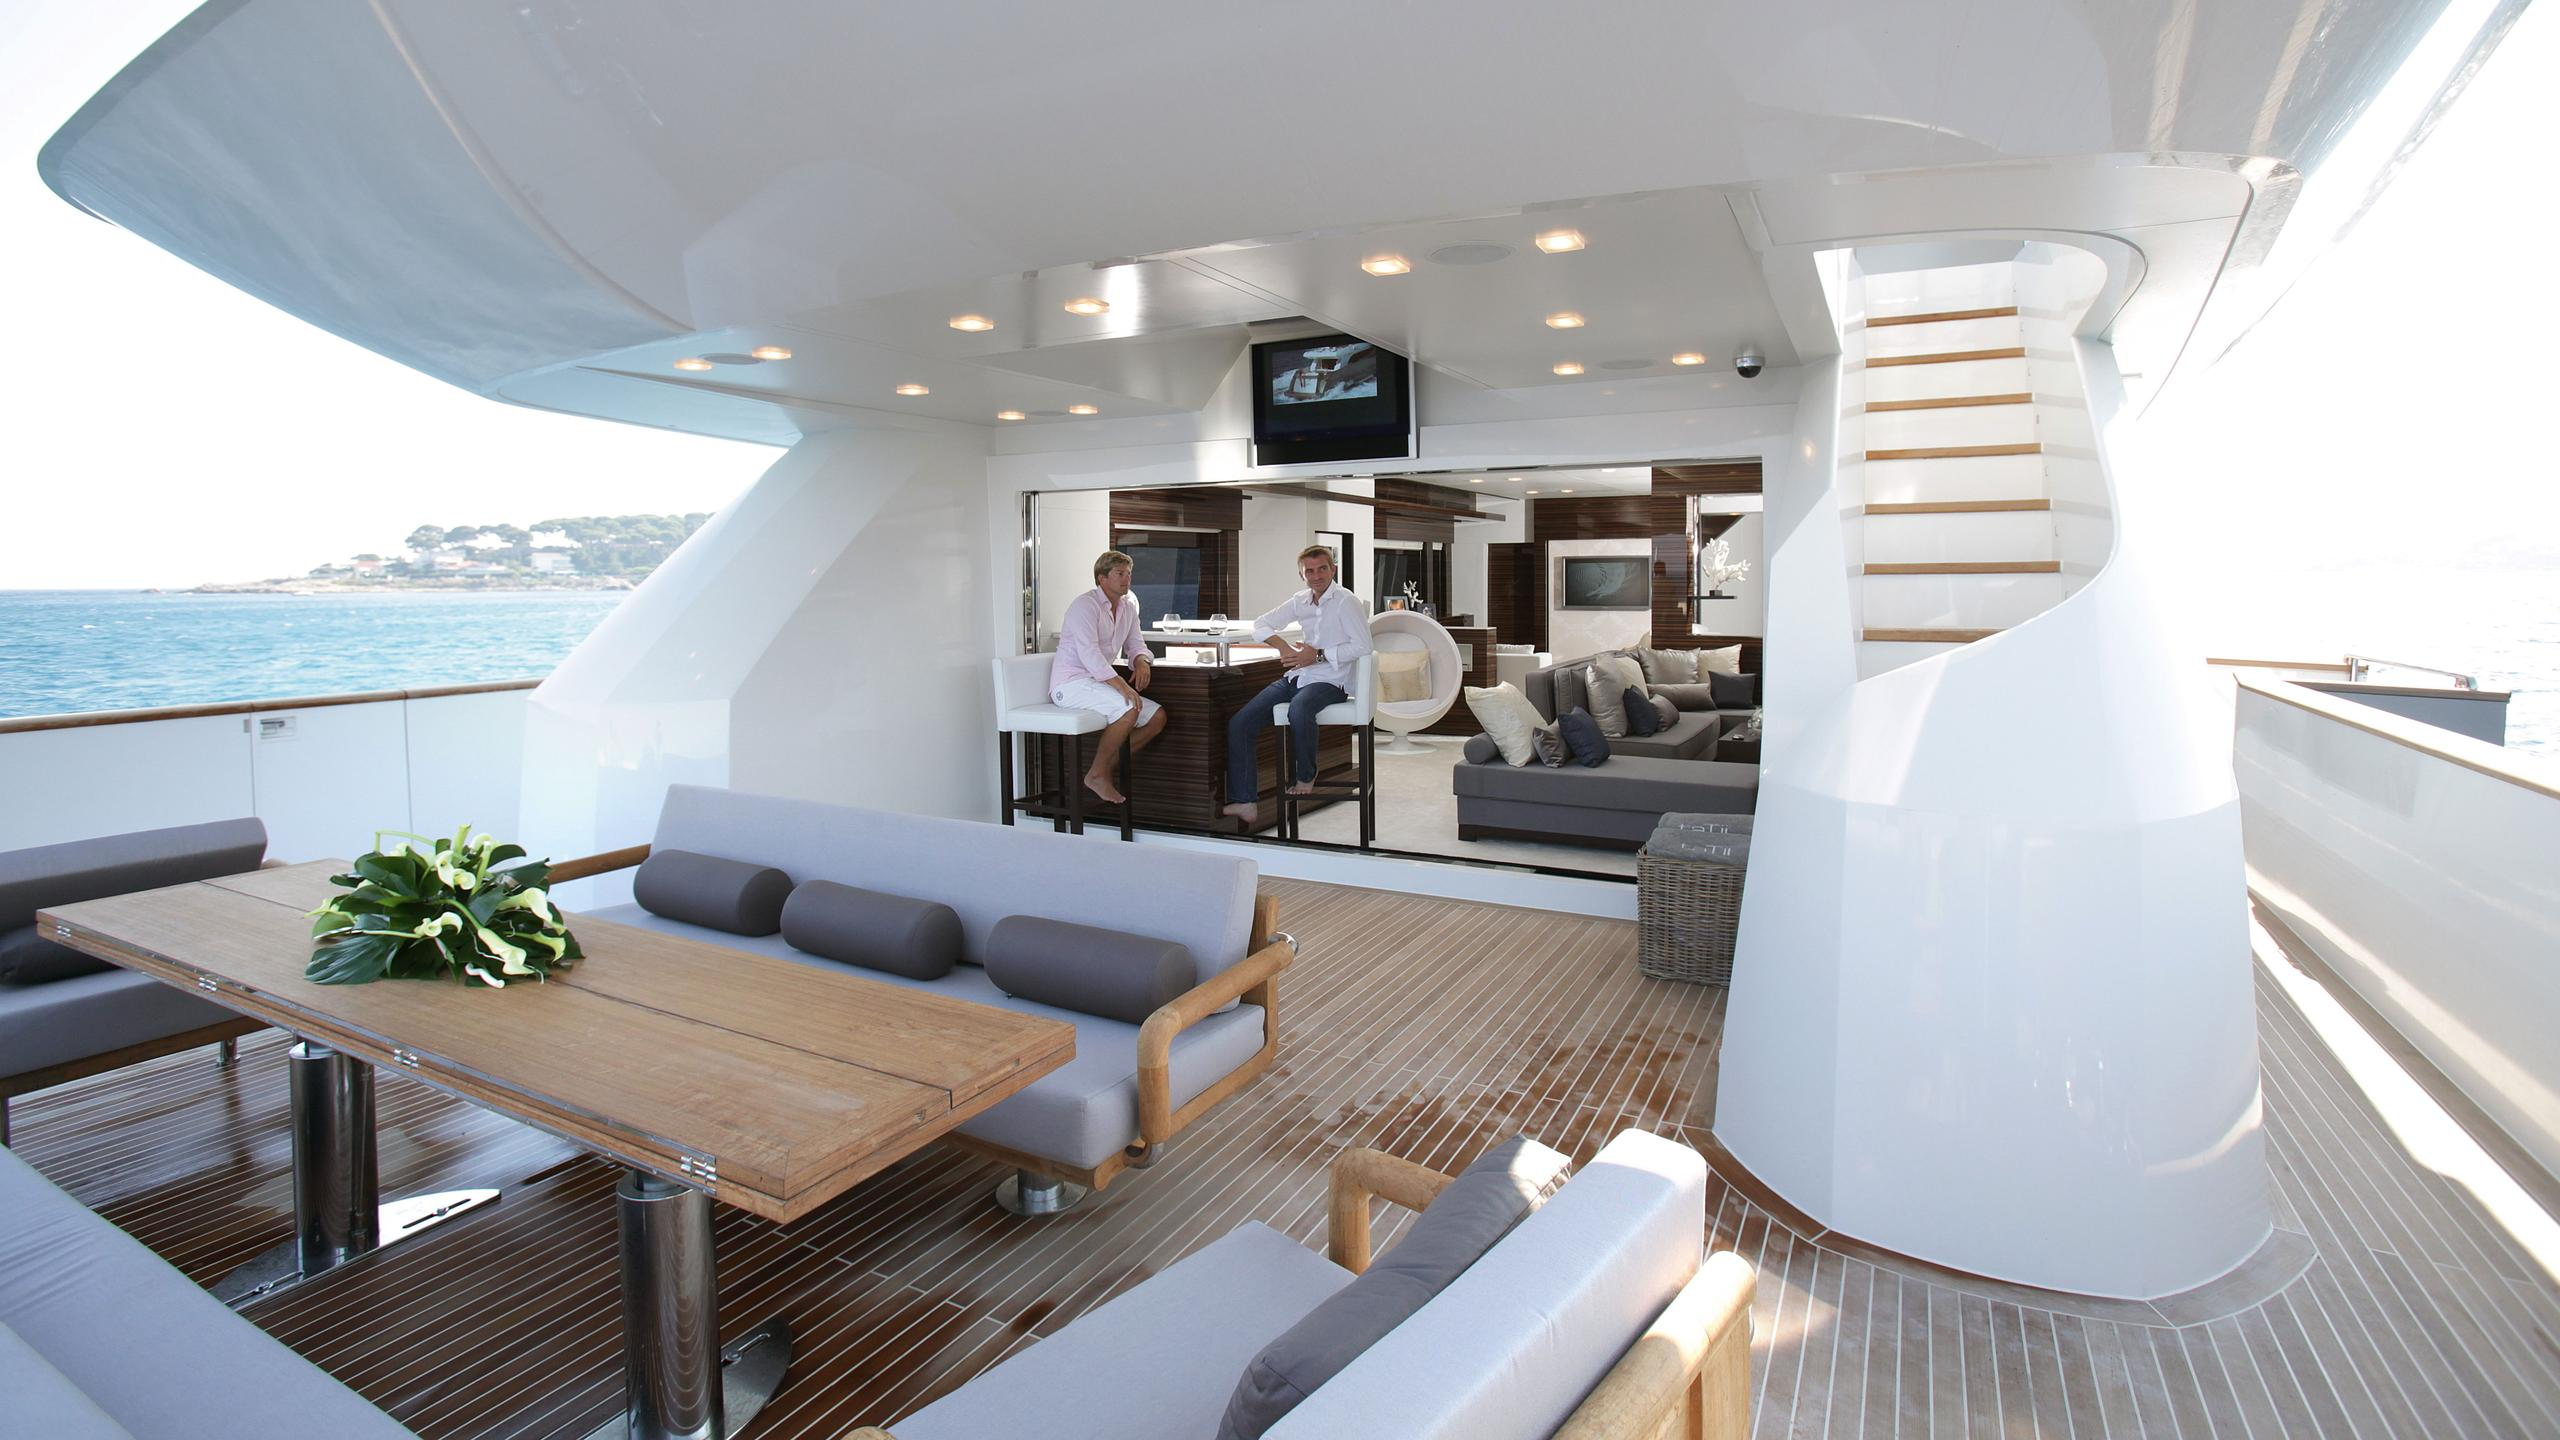 tatii-motor-yacht-tamsen-2009-40m-covered-deck